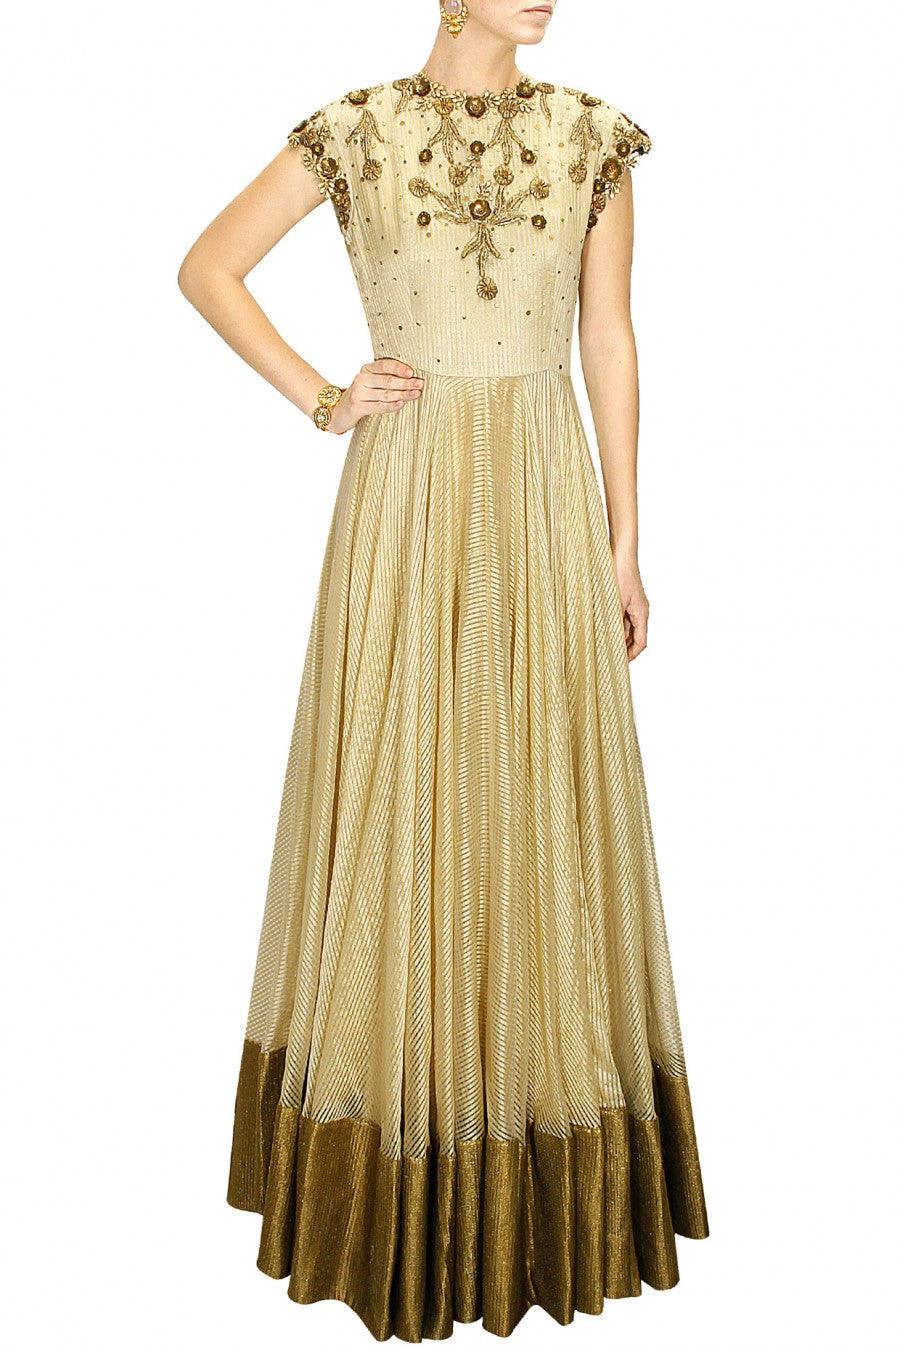 Offwhite floor length anarkali salwar kameez in Matka Silk